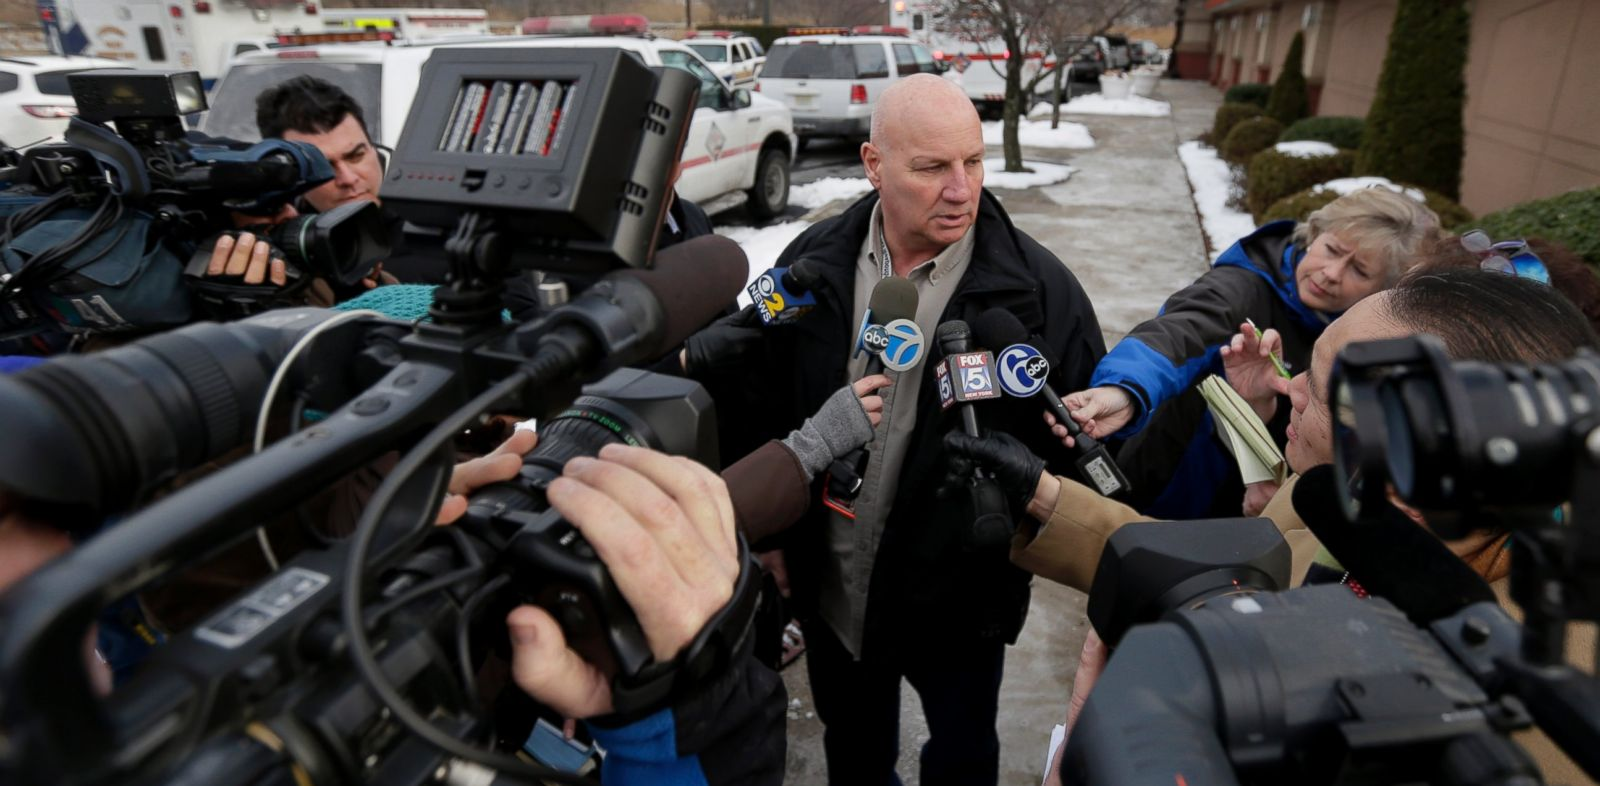 PHOTO: Lyndhurst, N.J., Police Chief James B. OConnor talks to the media outside a Quality Inn near the site of NFL Super Bowl XLVIII, Jan. 31, 2014, in Lyndhurst, N.J.